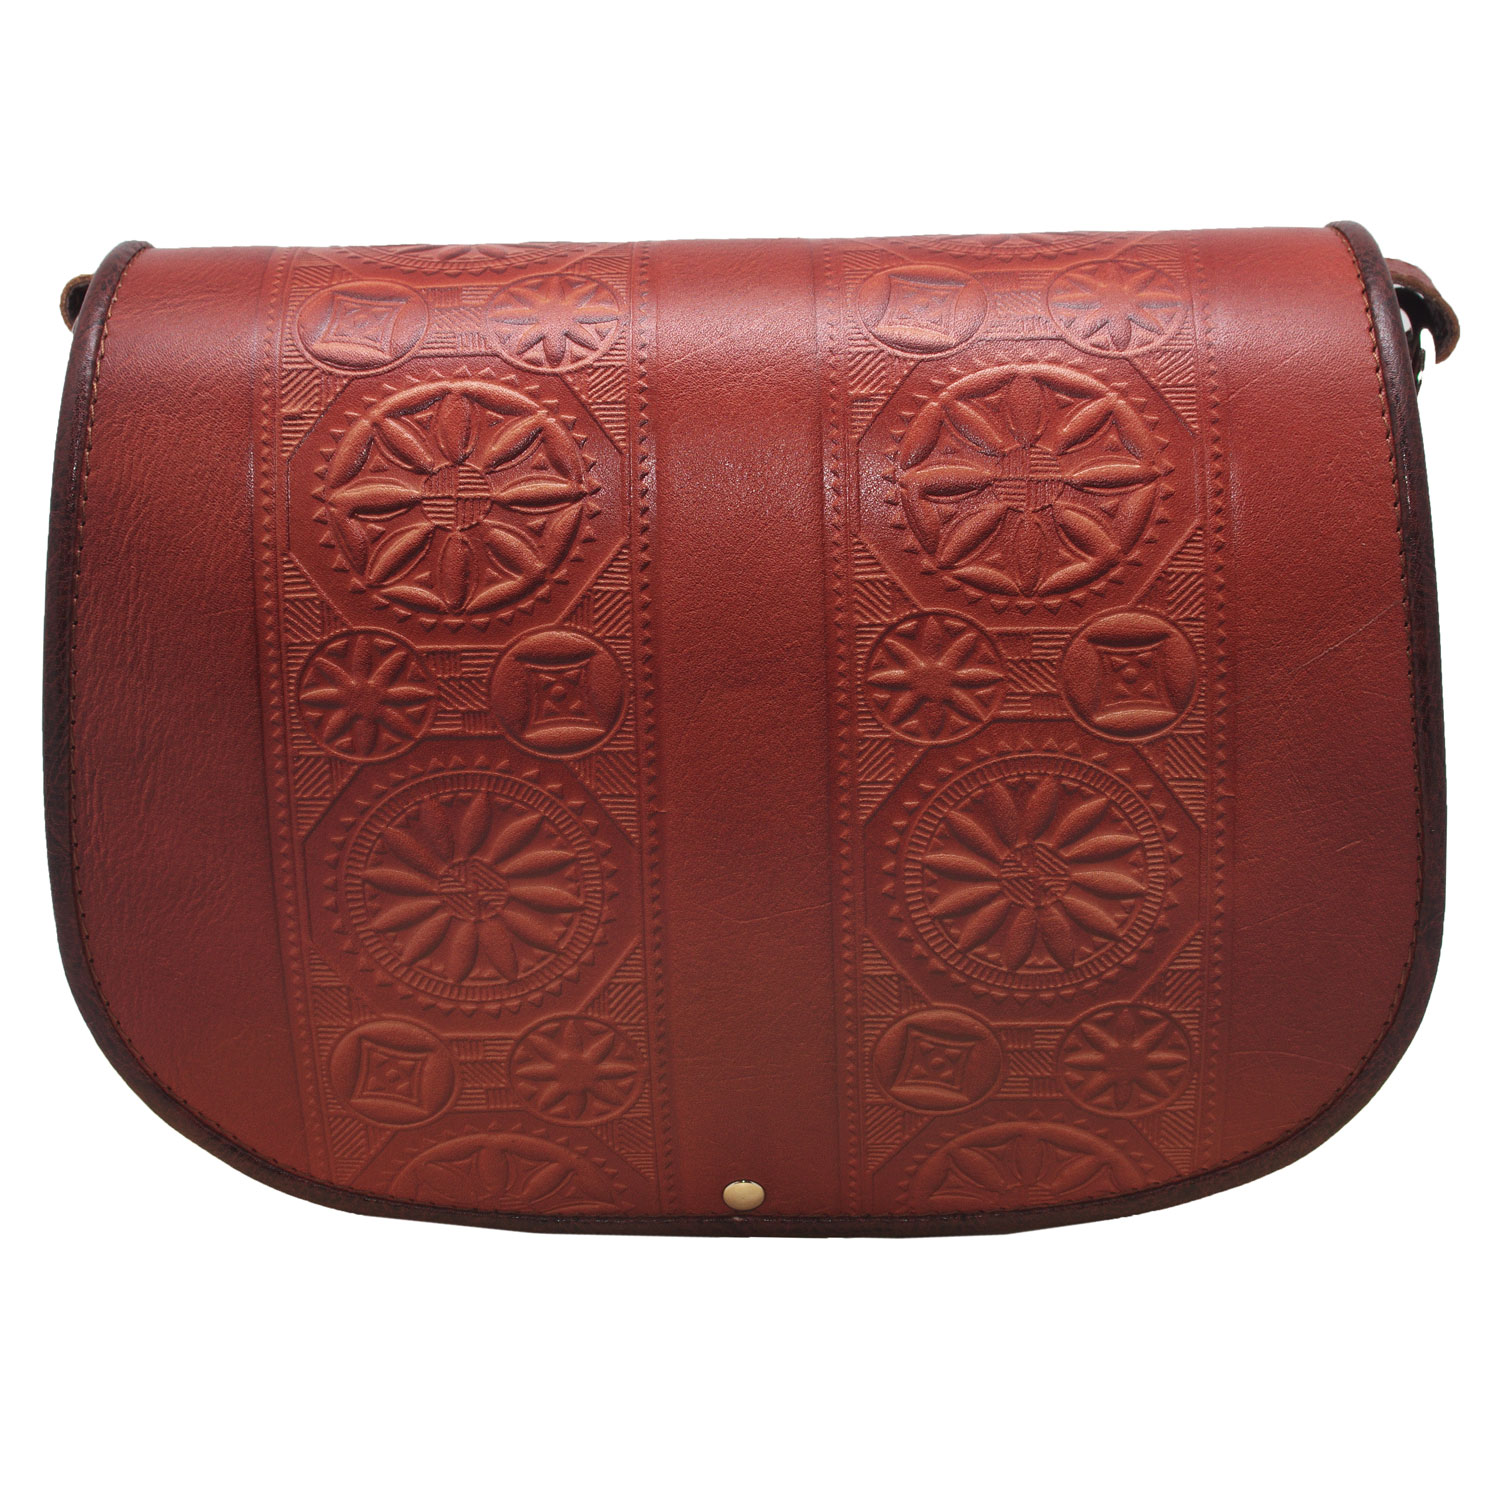 Large women full grain leather bag with traditional popular motifs moulded embossed symbols 7